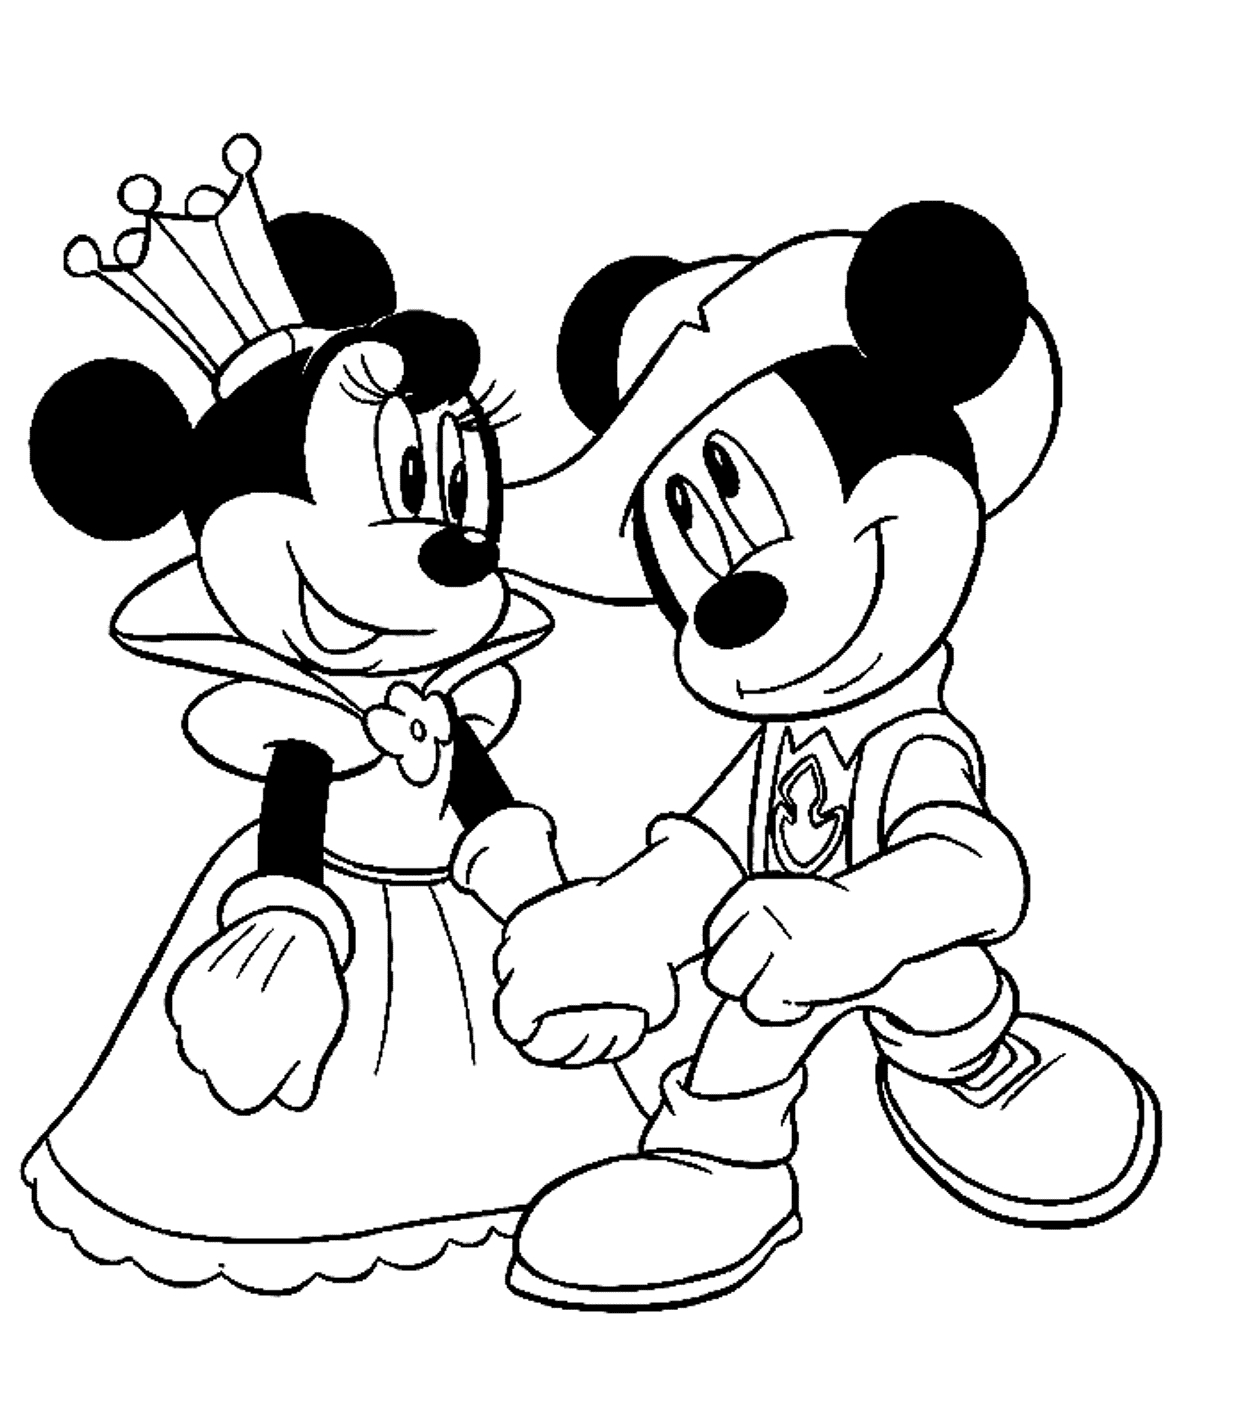 1246x1424 Mickey Mouse And Minnie Mouse Sketch Mickey And Minnie Mouse